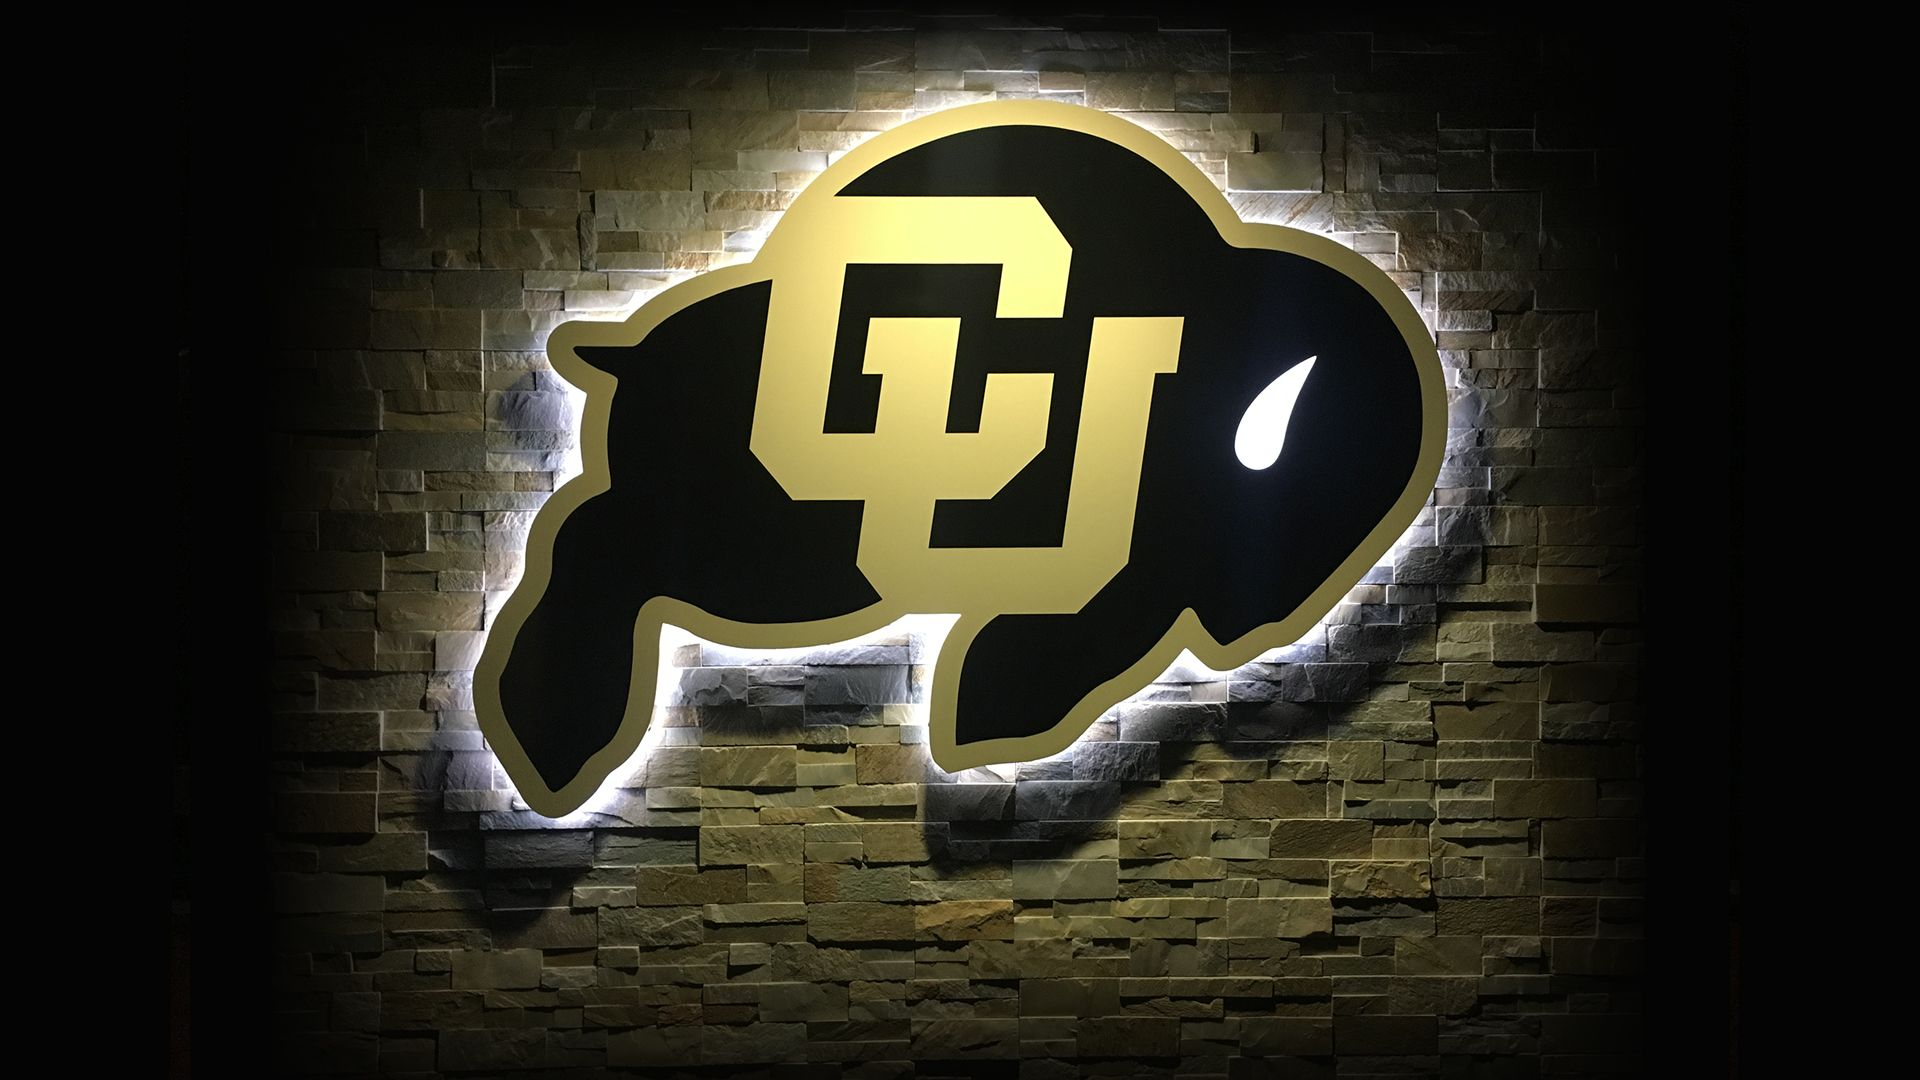 Cu Themed Zoom Meeting Backgrounds University Of Colorado Athletics In 2020 University Of Colorado Theme Background